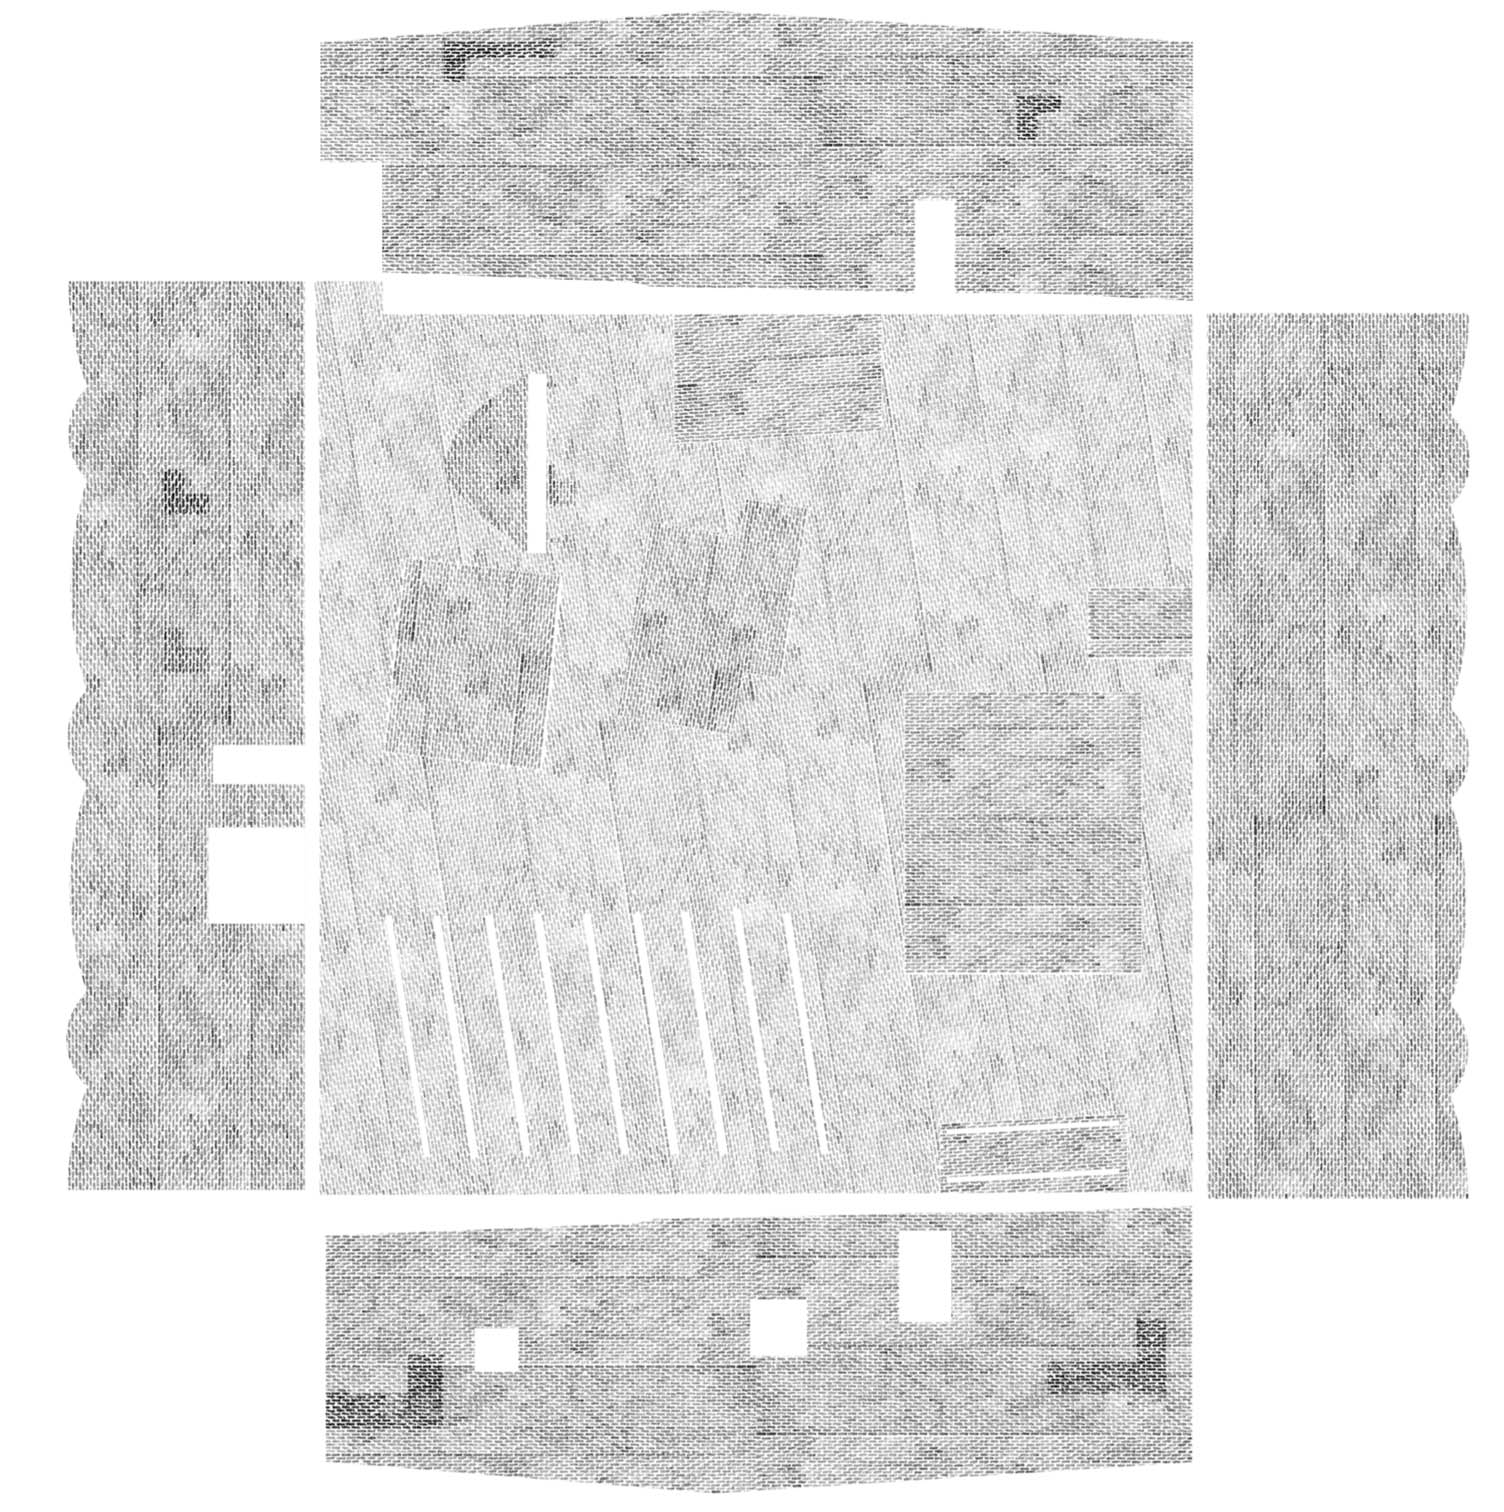 The Constructed Floor